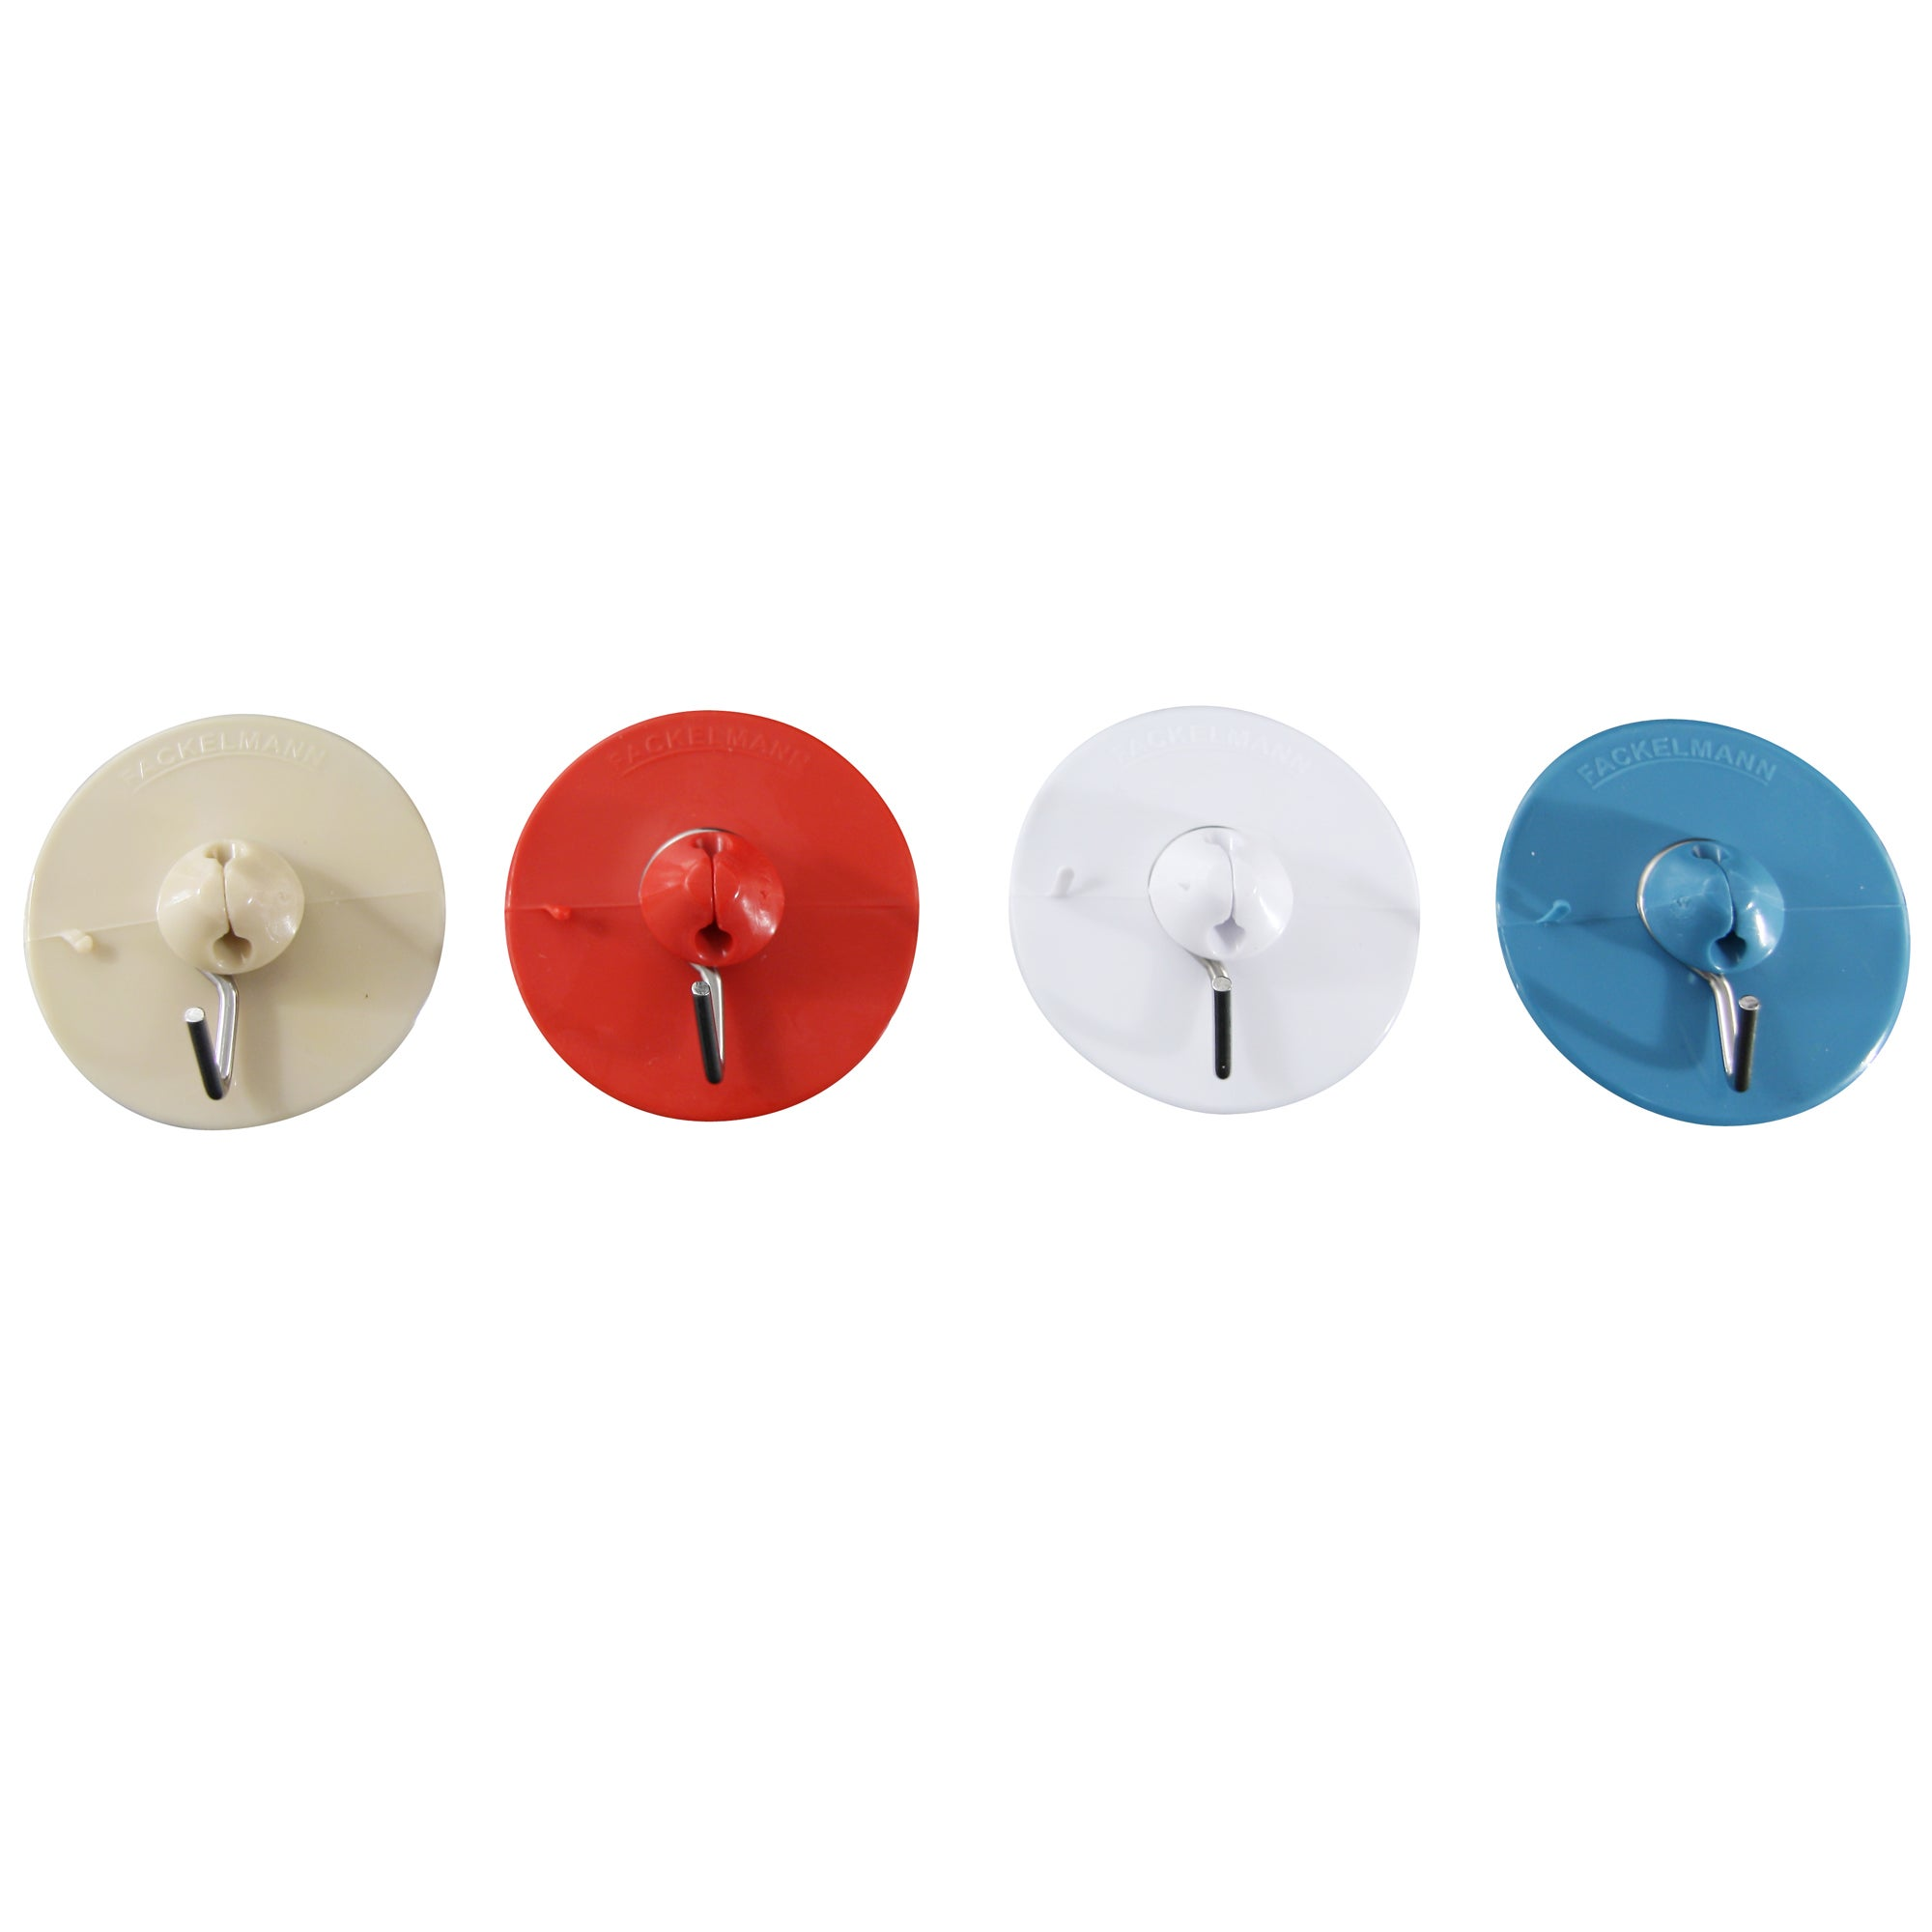 Pack of 4 Suction Hooks